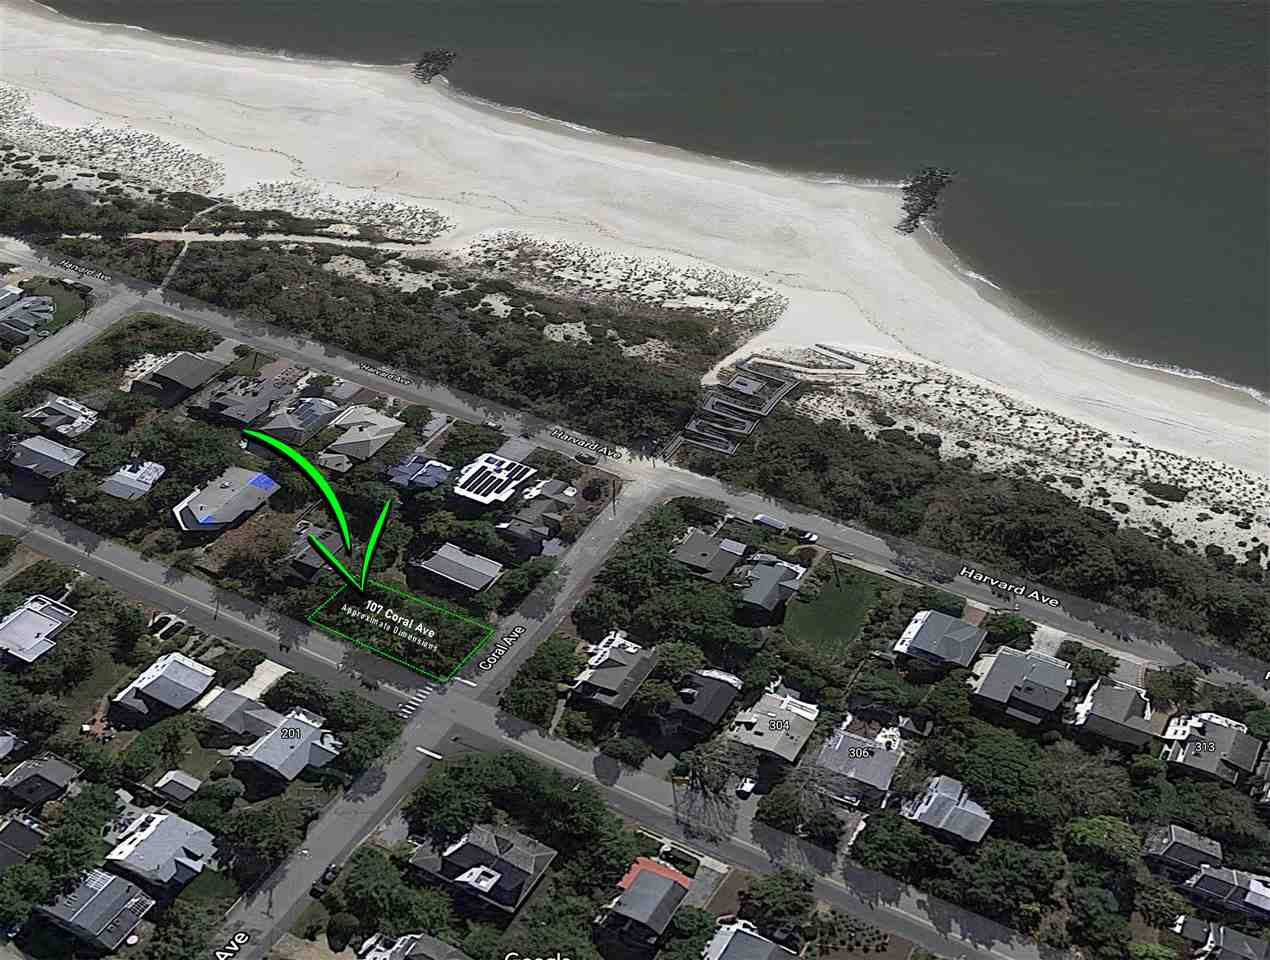 107 Coral Avenue - Cape May Point